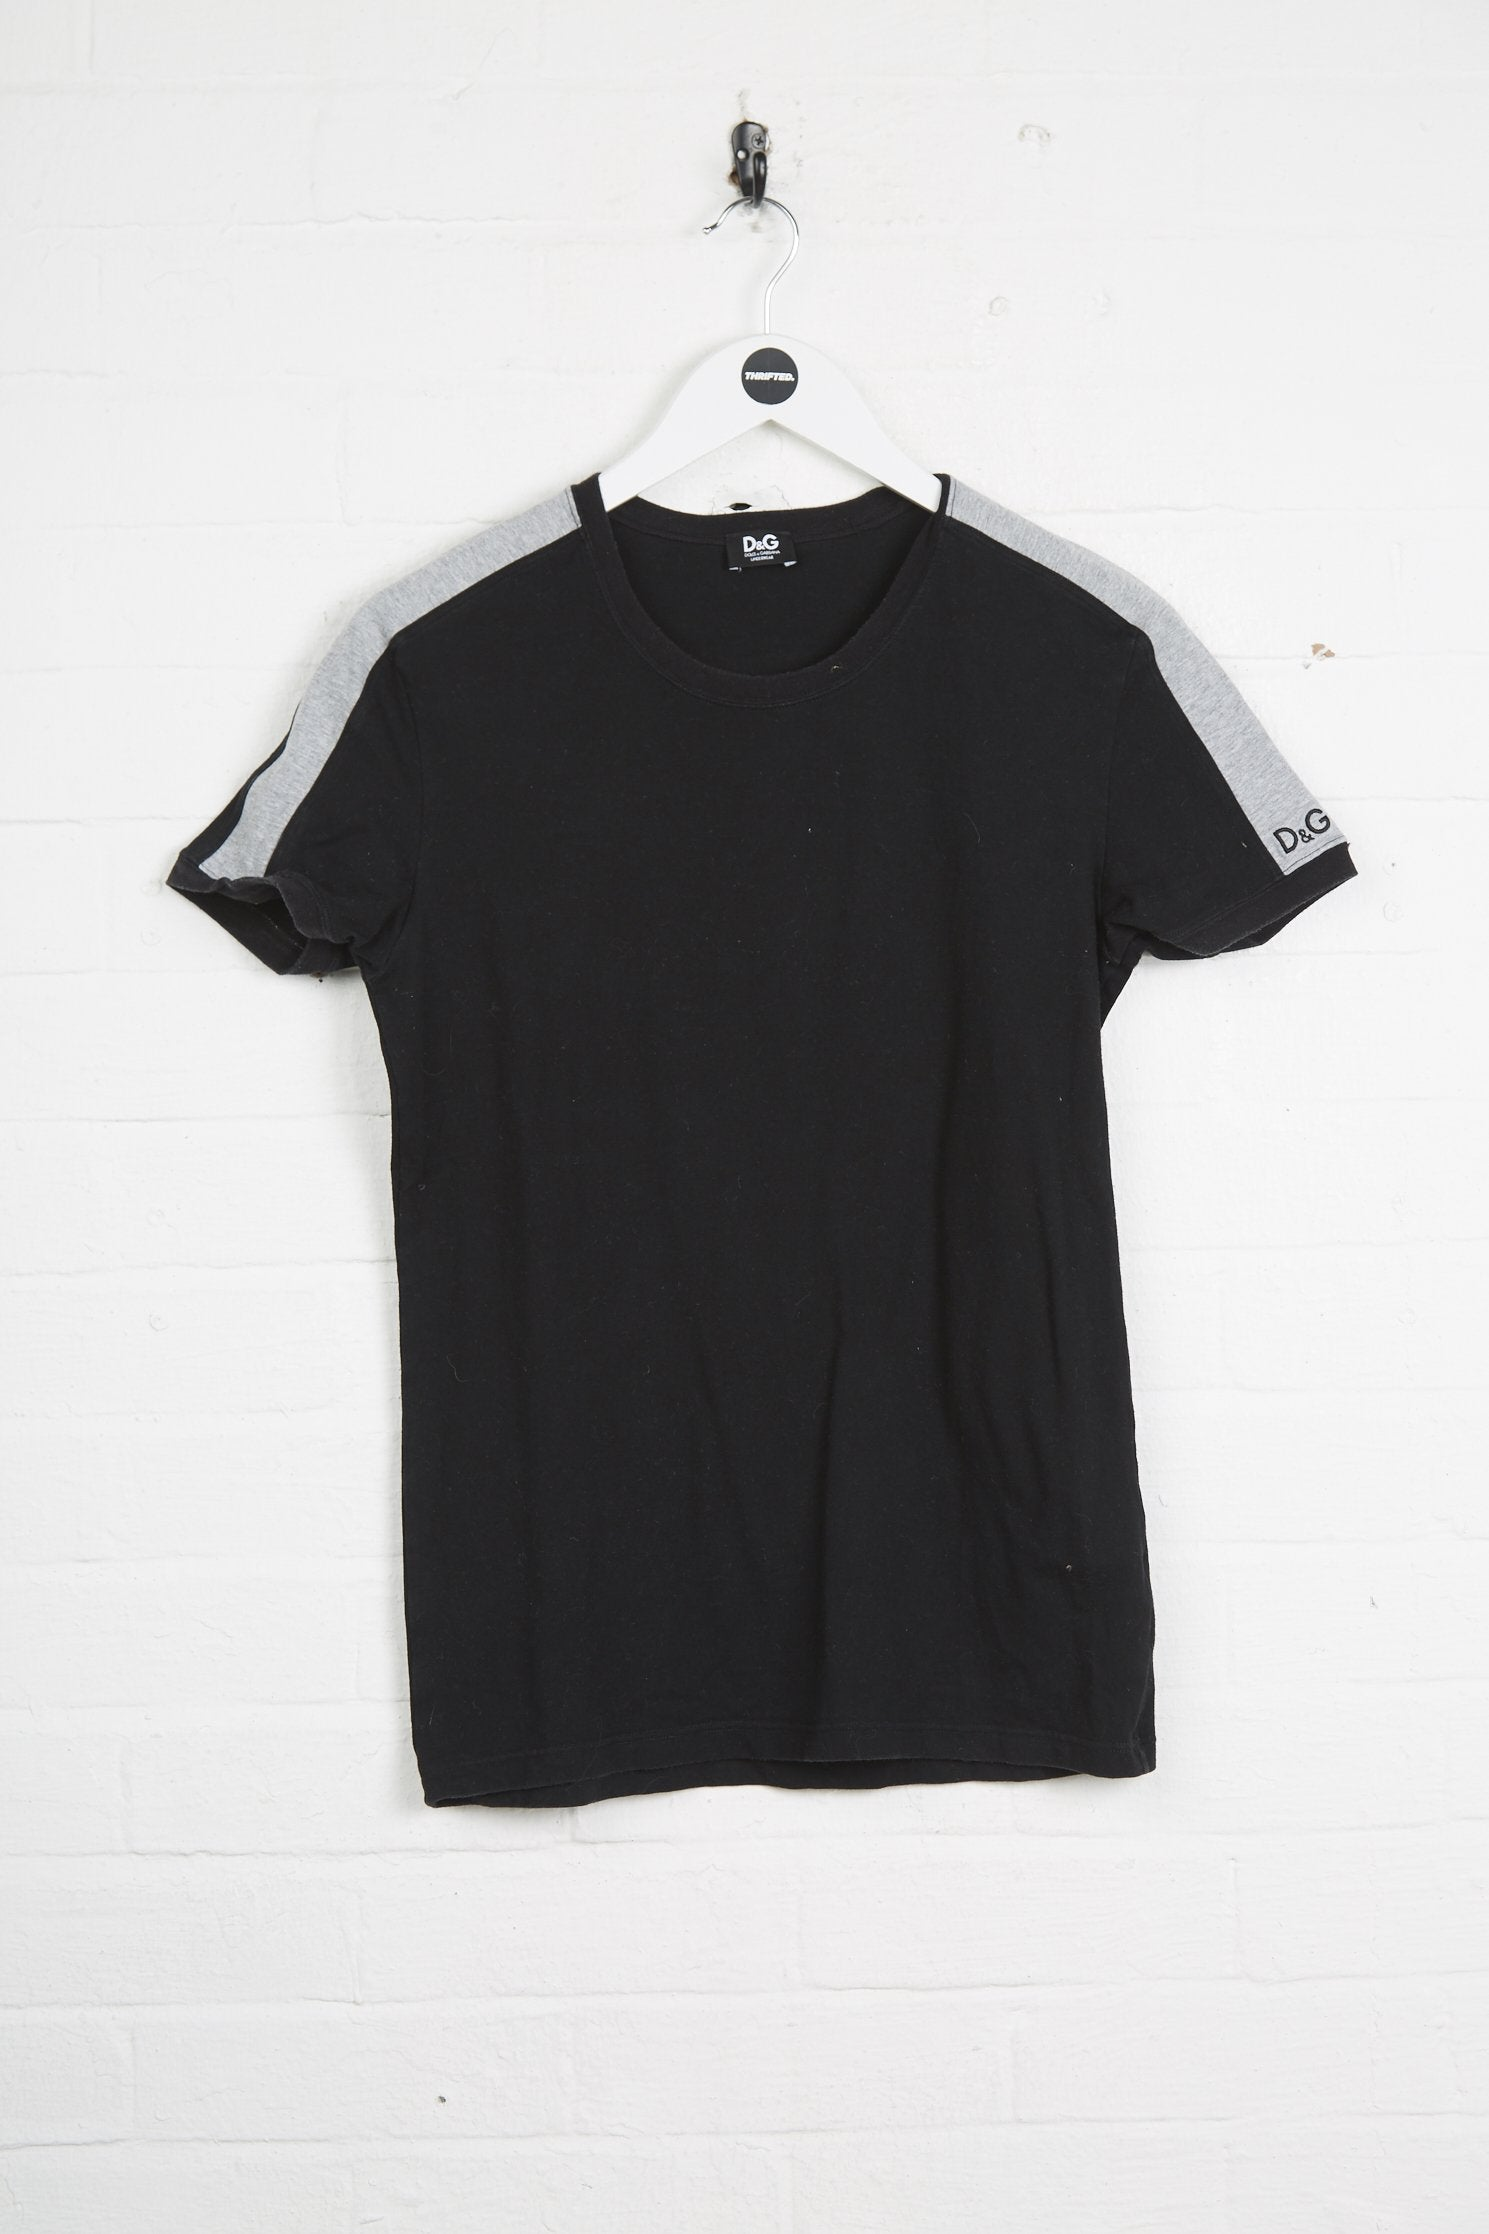 Vintage Dolce & Gabbana T-Shirt - Medium Black Cotton - Thrifted.com